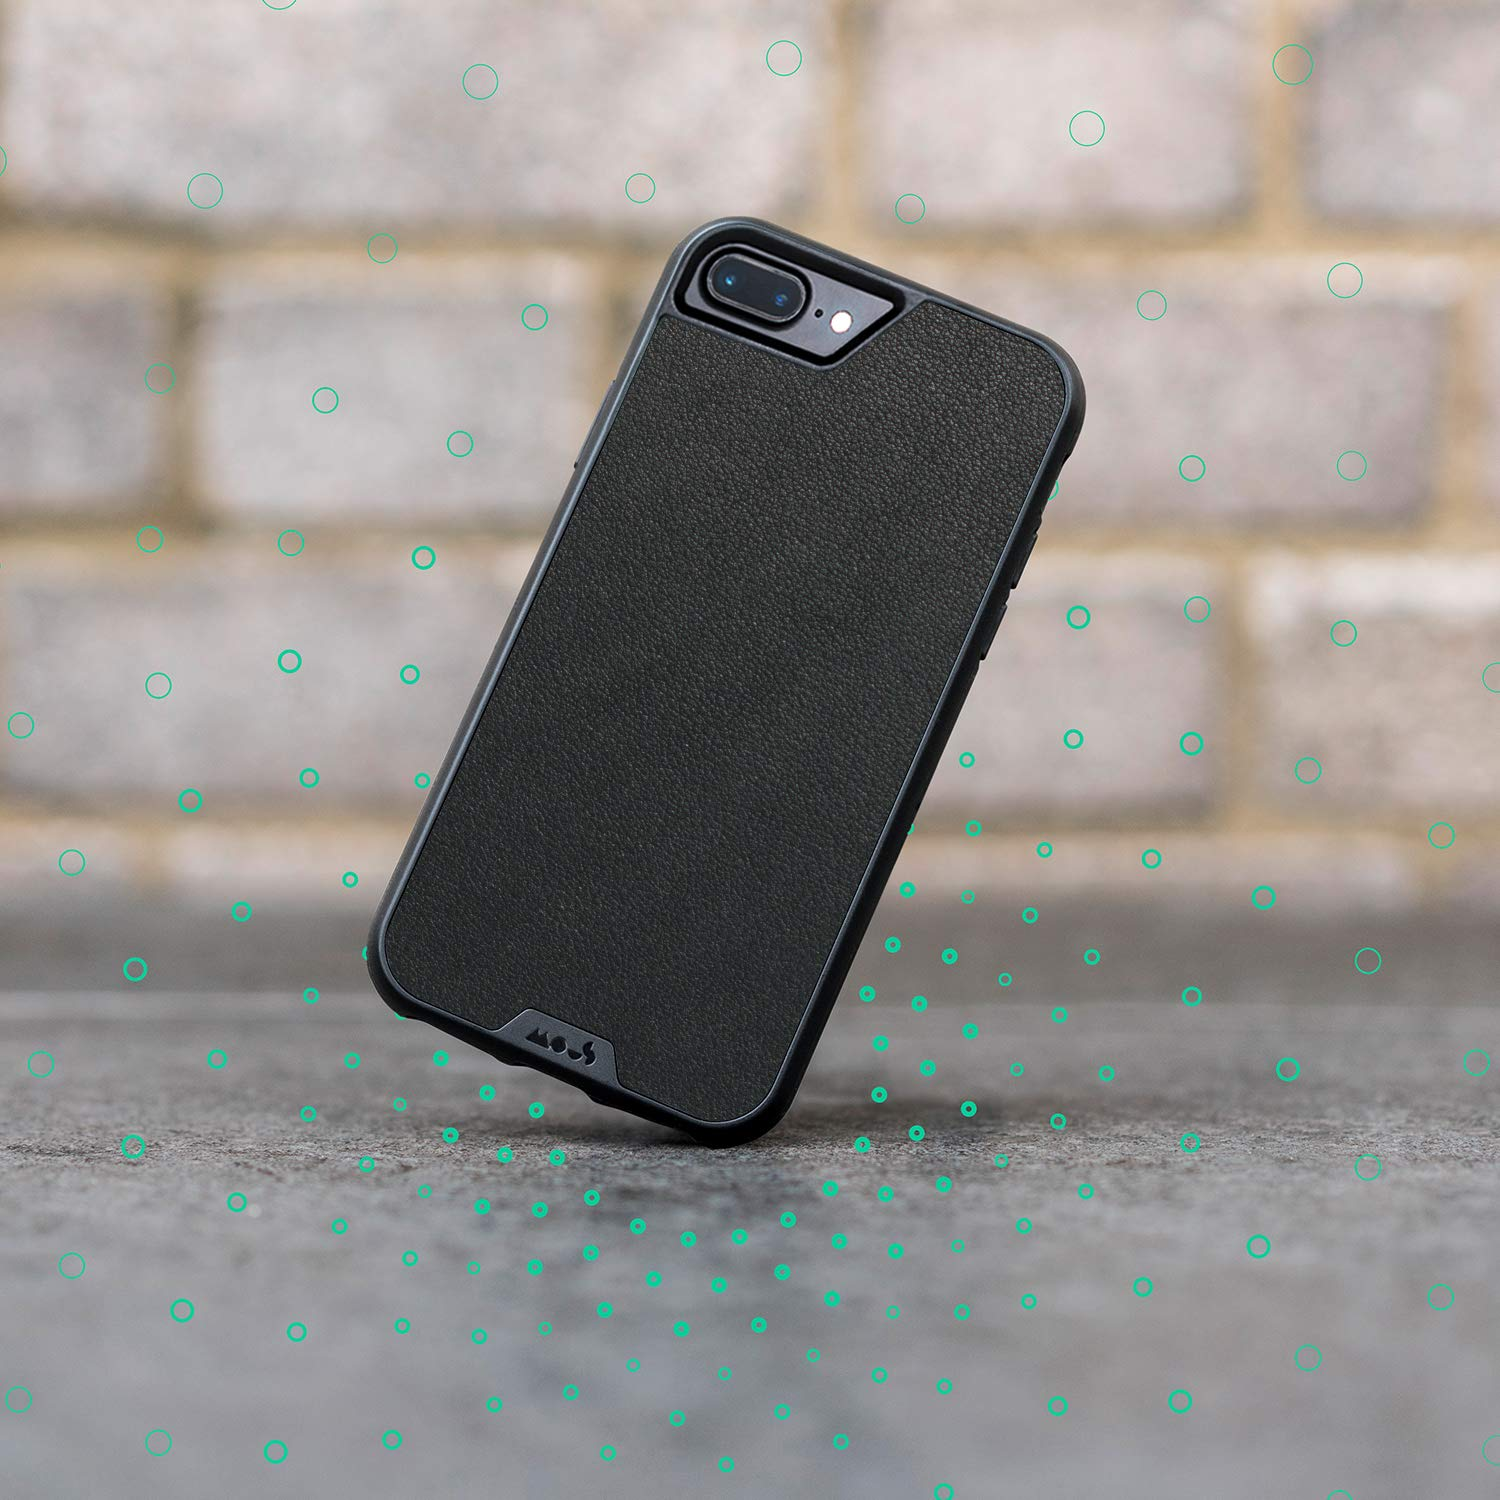 Mous Protective iPhone Case 8+/7+/6s+/6+ Plus - Black Leather - Limitless 2.0 by MOUS (Image #6)